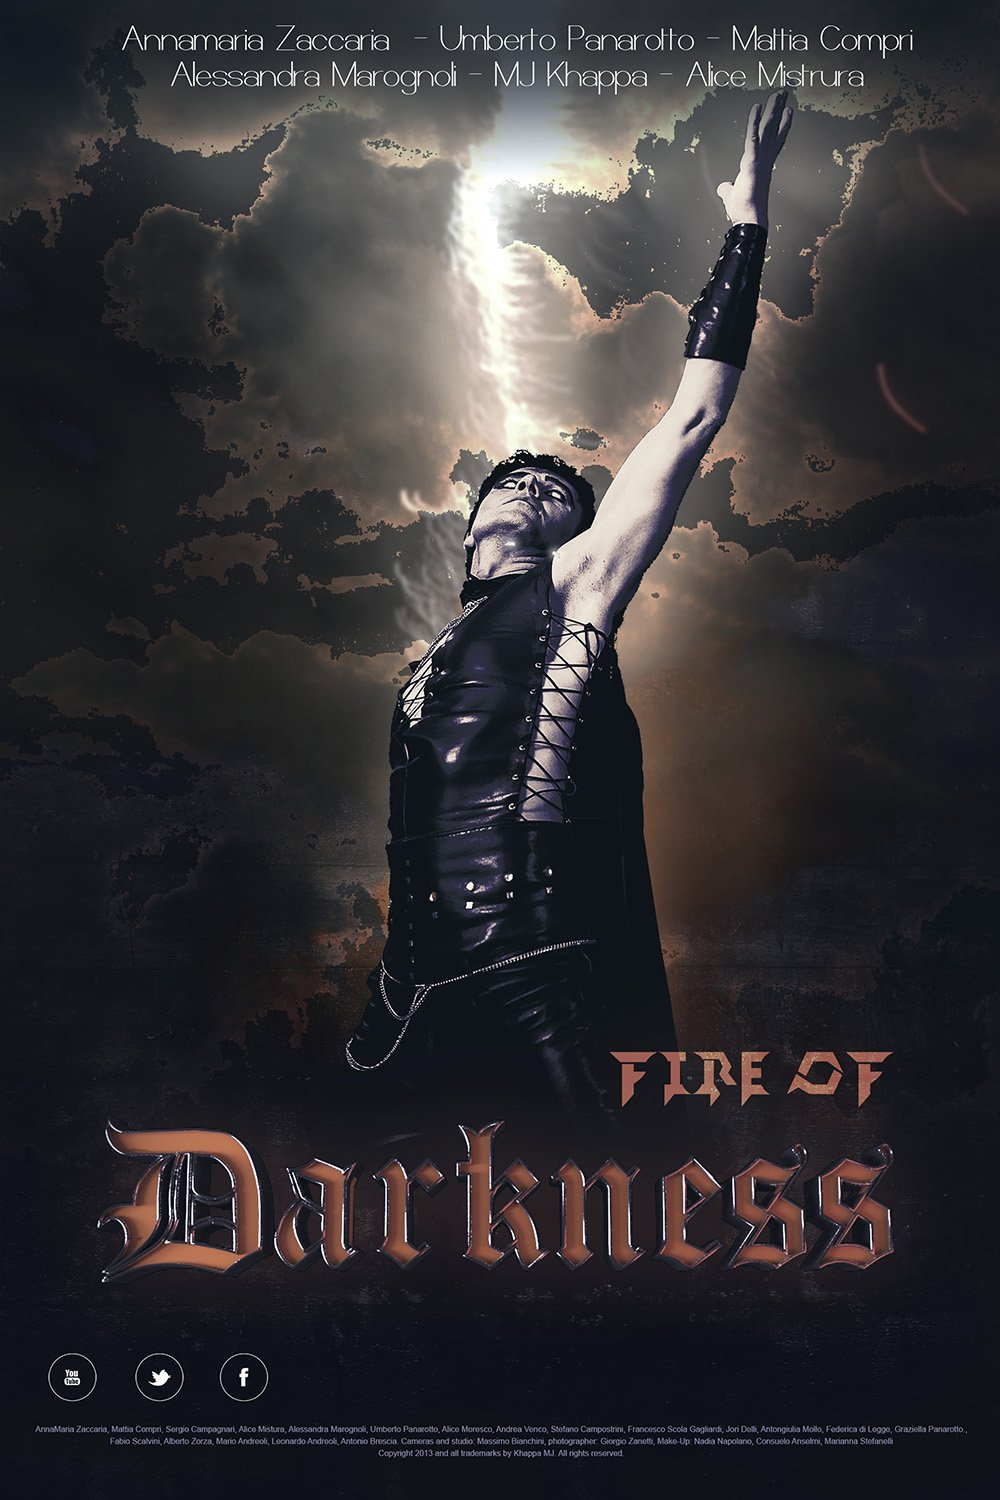 Fire of Darkness fantasy/drama movie